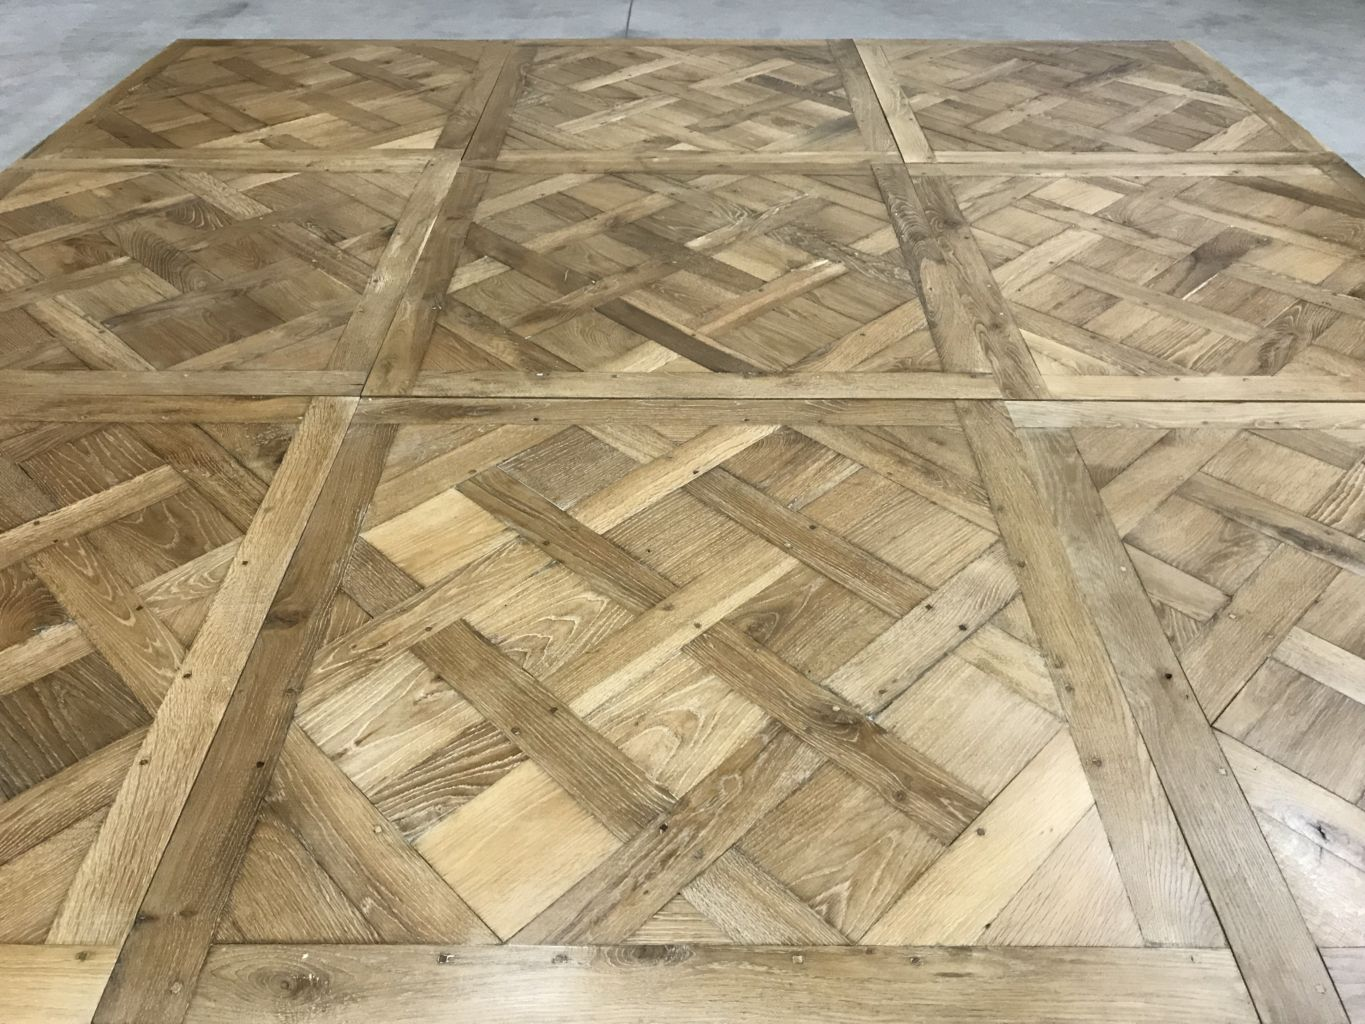 parquet versailles en vieux ch ne 100x100 cm bca mat riaux anciens. Black Bedroom Furniture Sets. Home Design Ideas